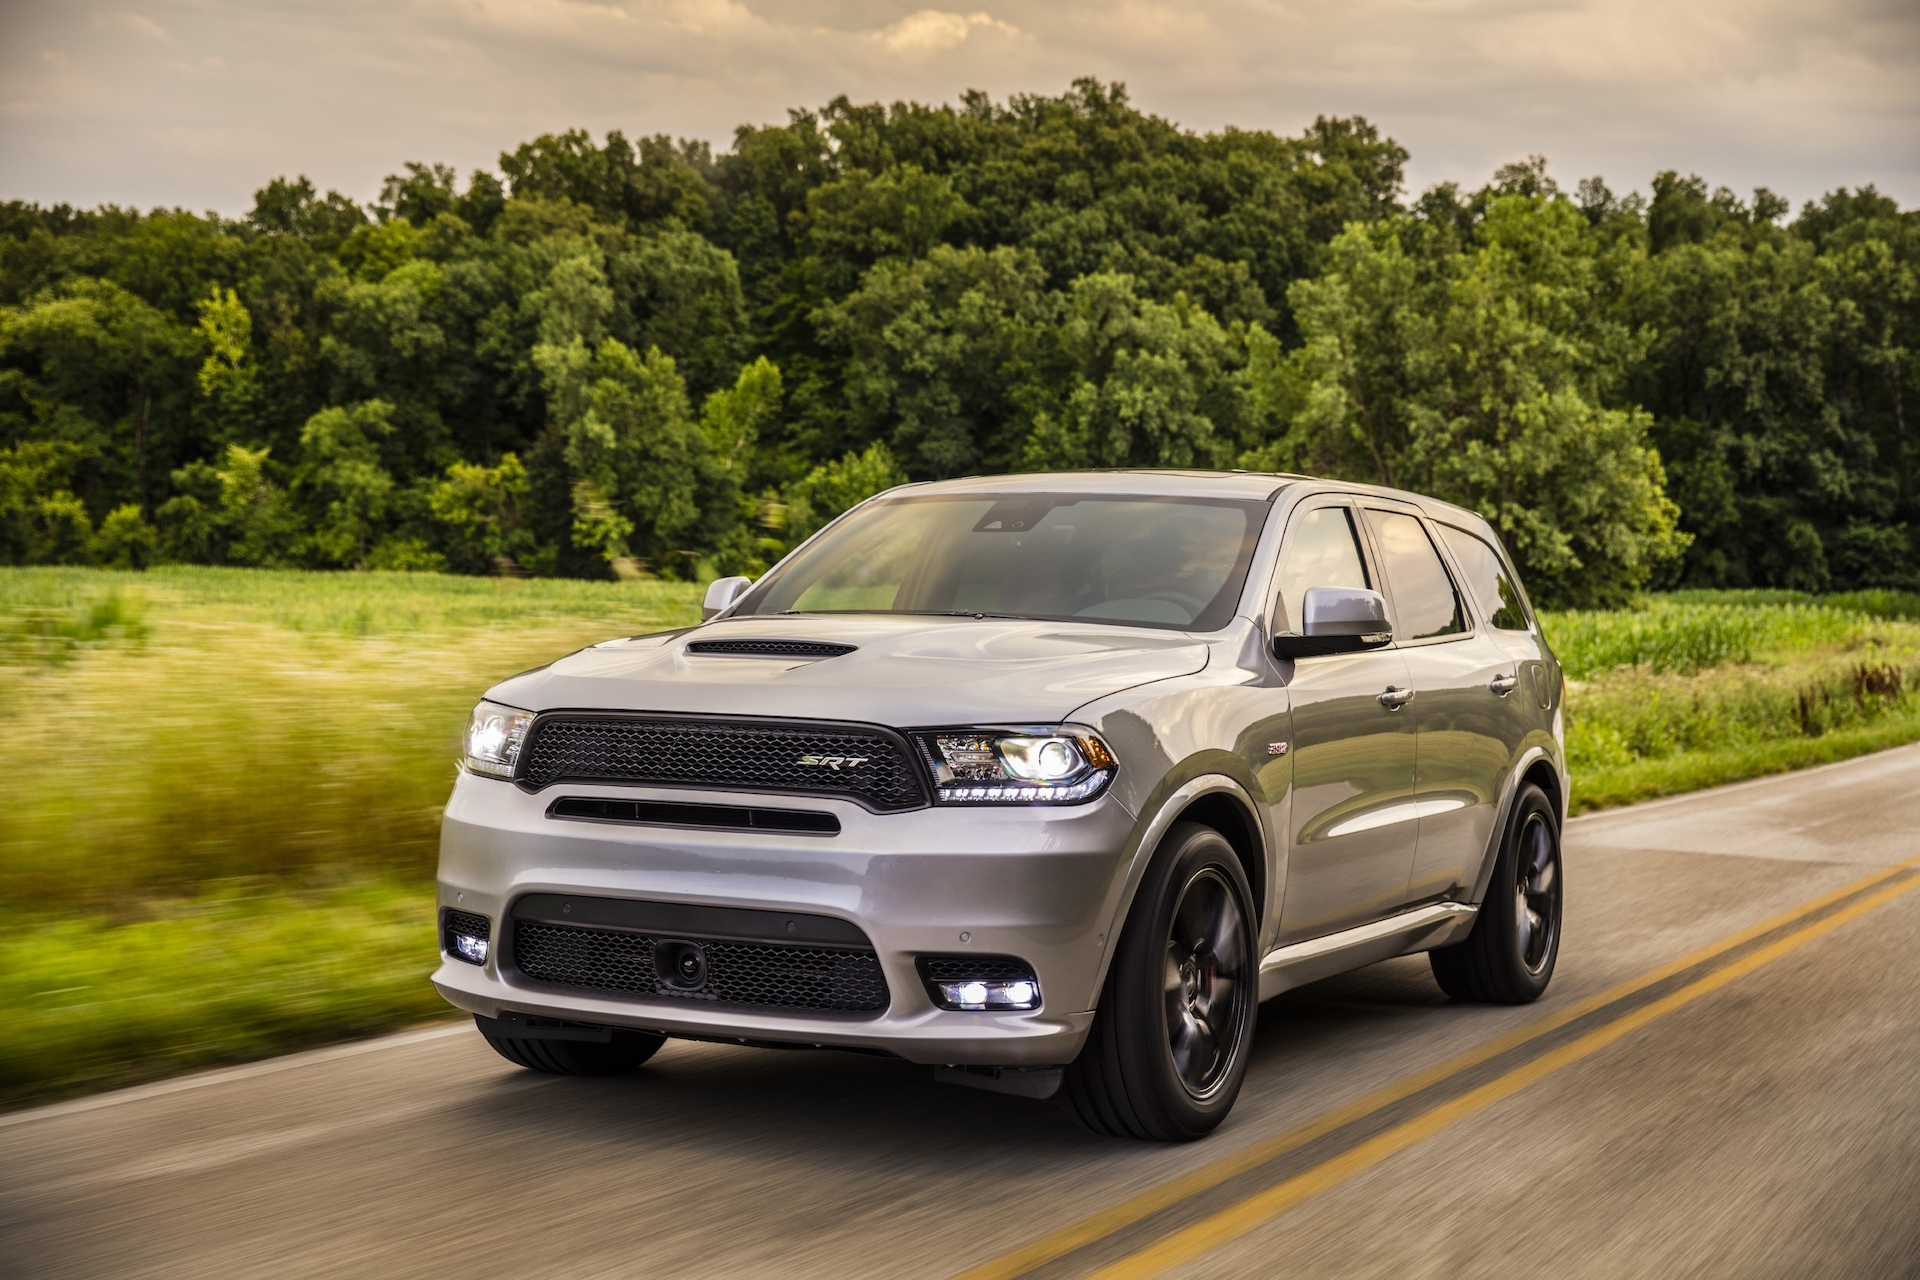 2020 Dodge Durango Review Ratings Specs Prices And Photos The Car Connection